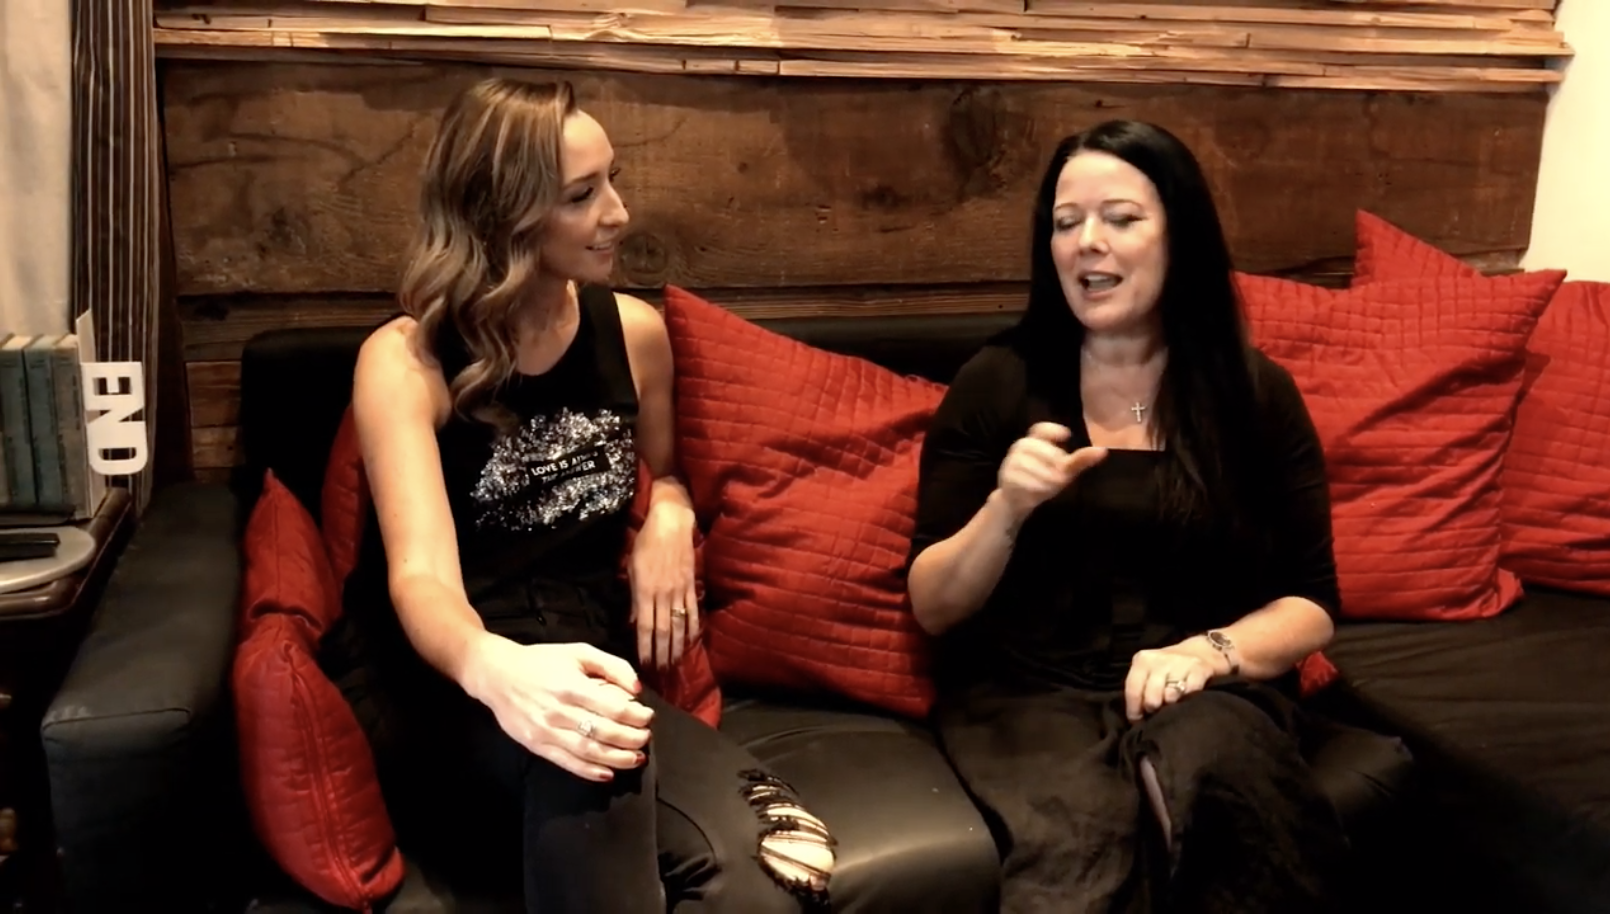 Behind the Music Continued : An Interview with Jenn Bostic & Lauren Christy